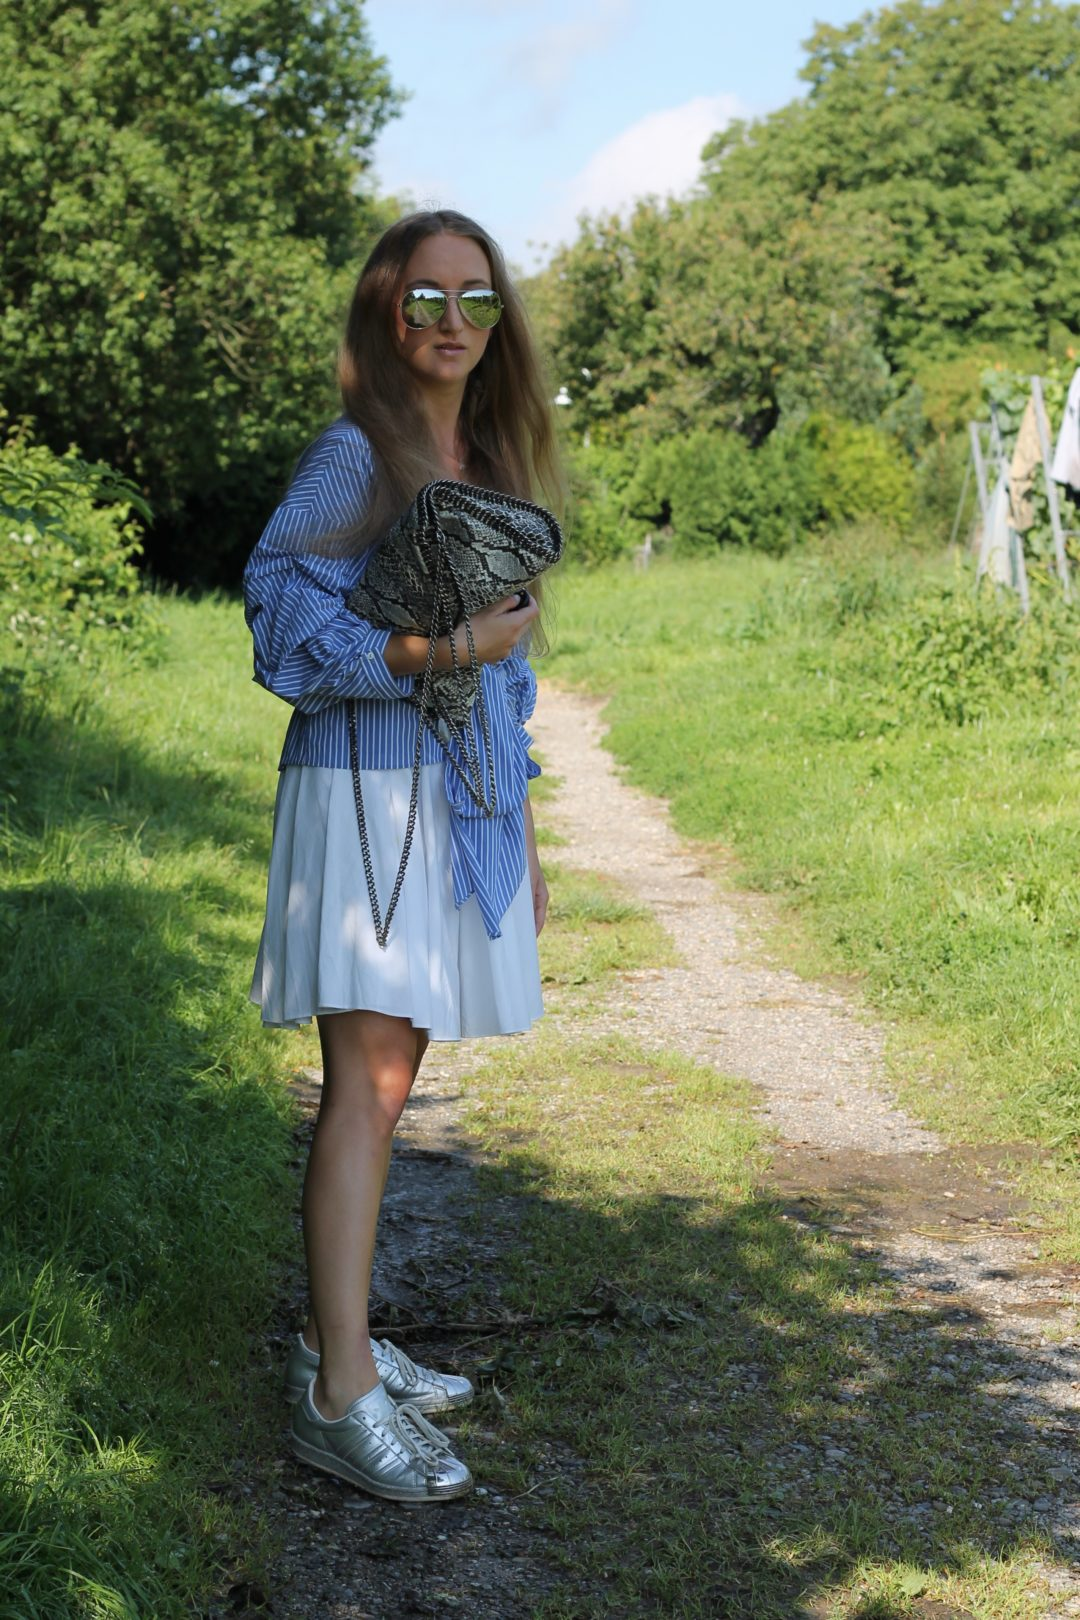 blue blouse - I am finally back with a new outfit! Blue is one of my favorite colors and I am especially addicted to blue blouses and the newest member...@wiebkembg